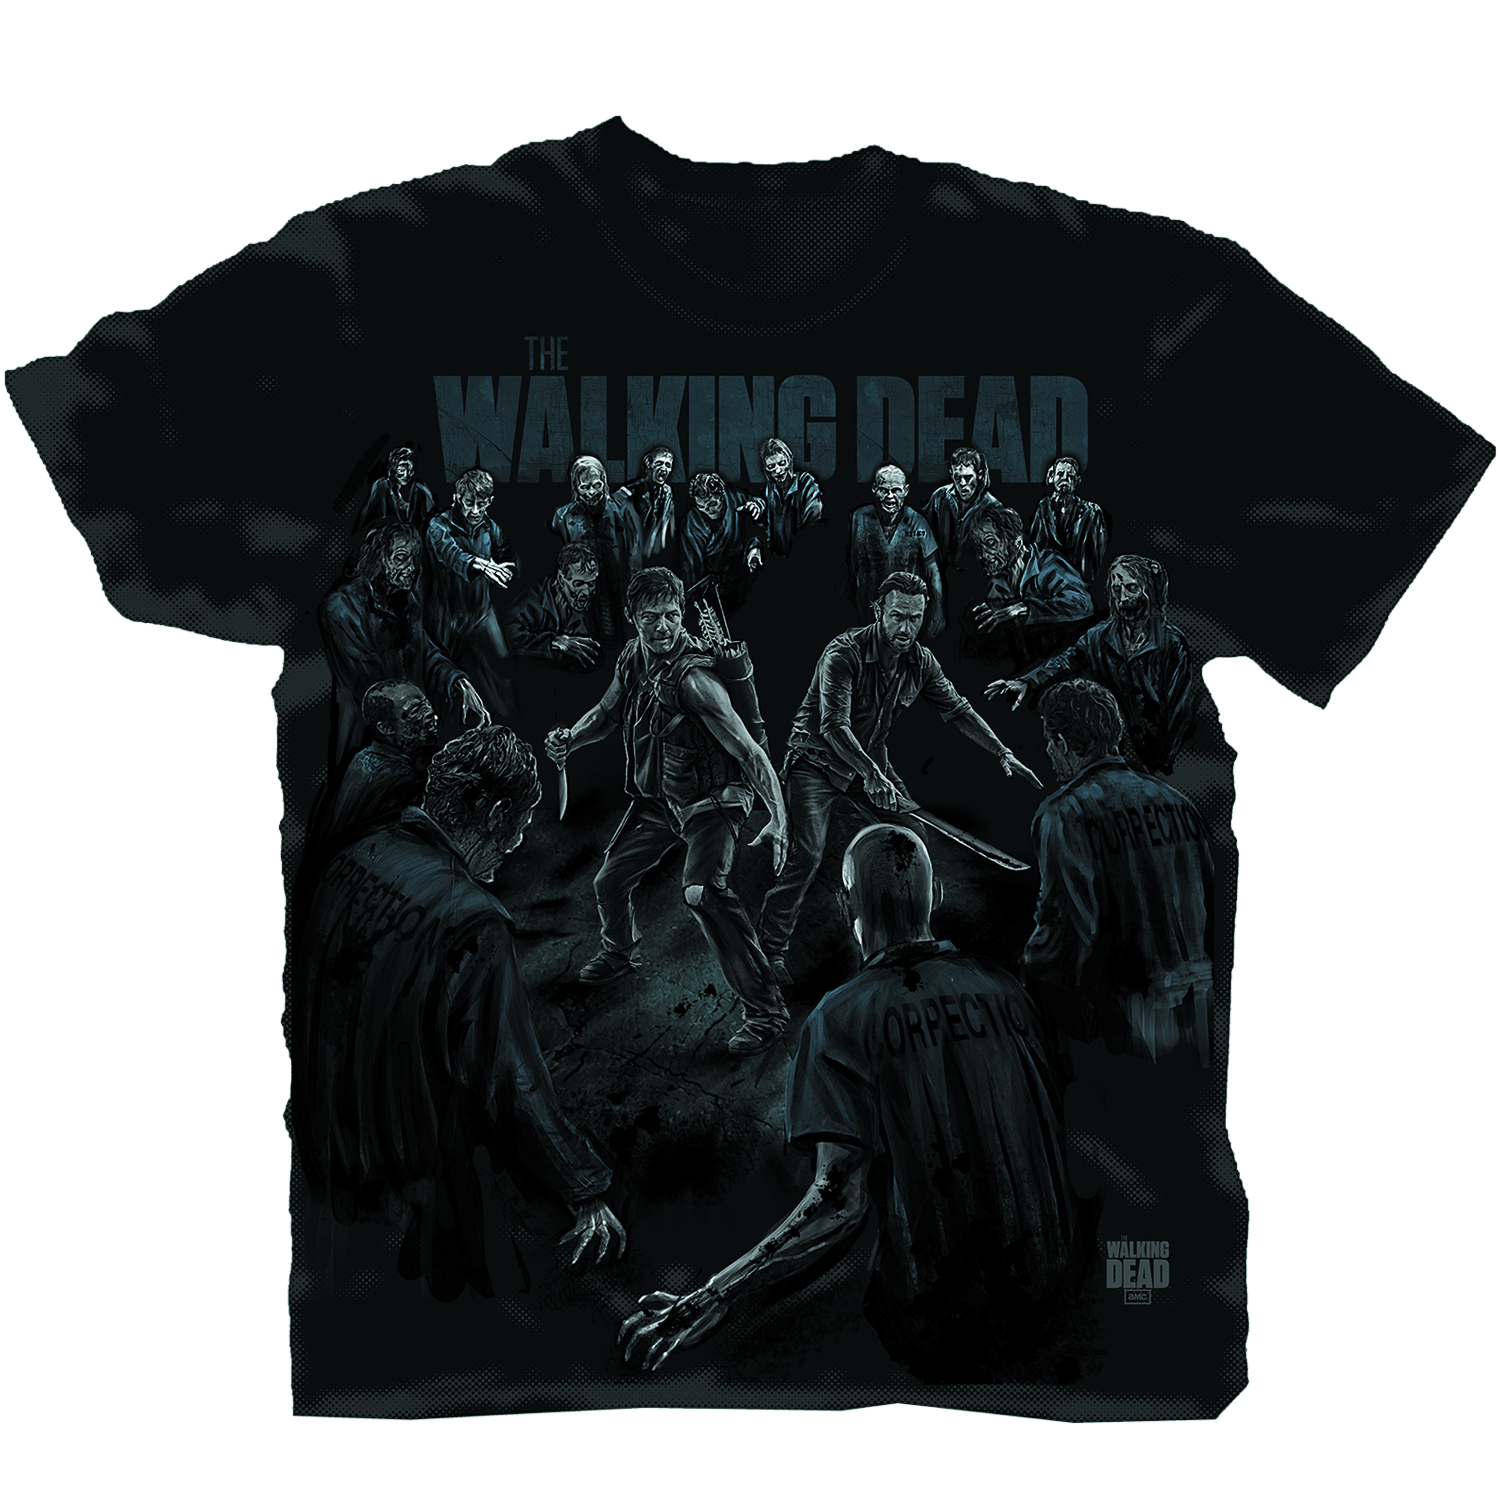 WALKING DEAD PROTECT THE GROUP BLK T/S SM